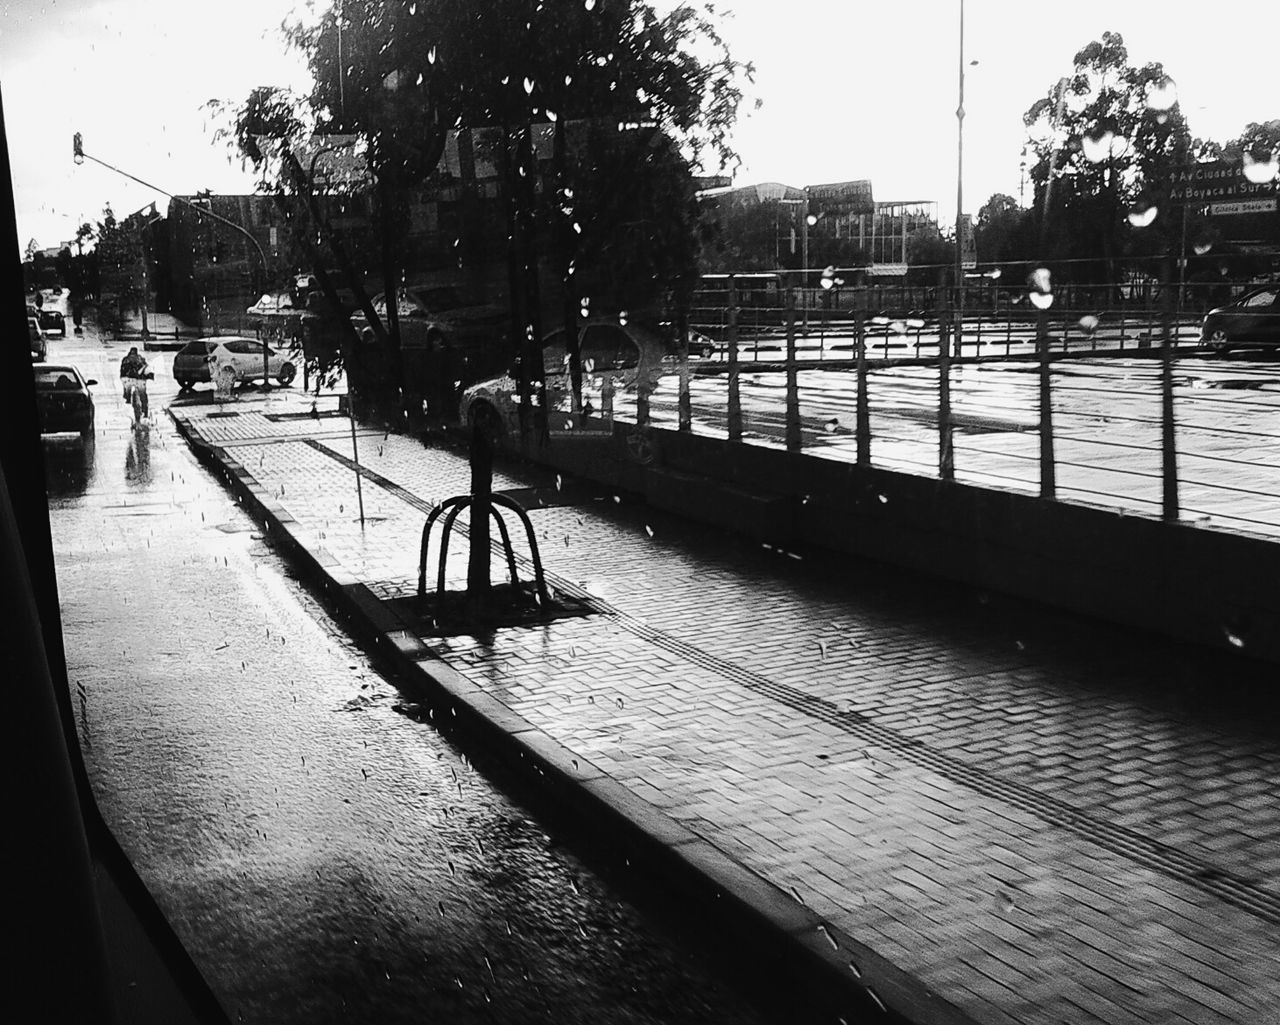 Wet Sidewalk And Road Seen Through Bus Window During Monsoon